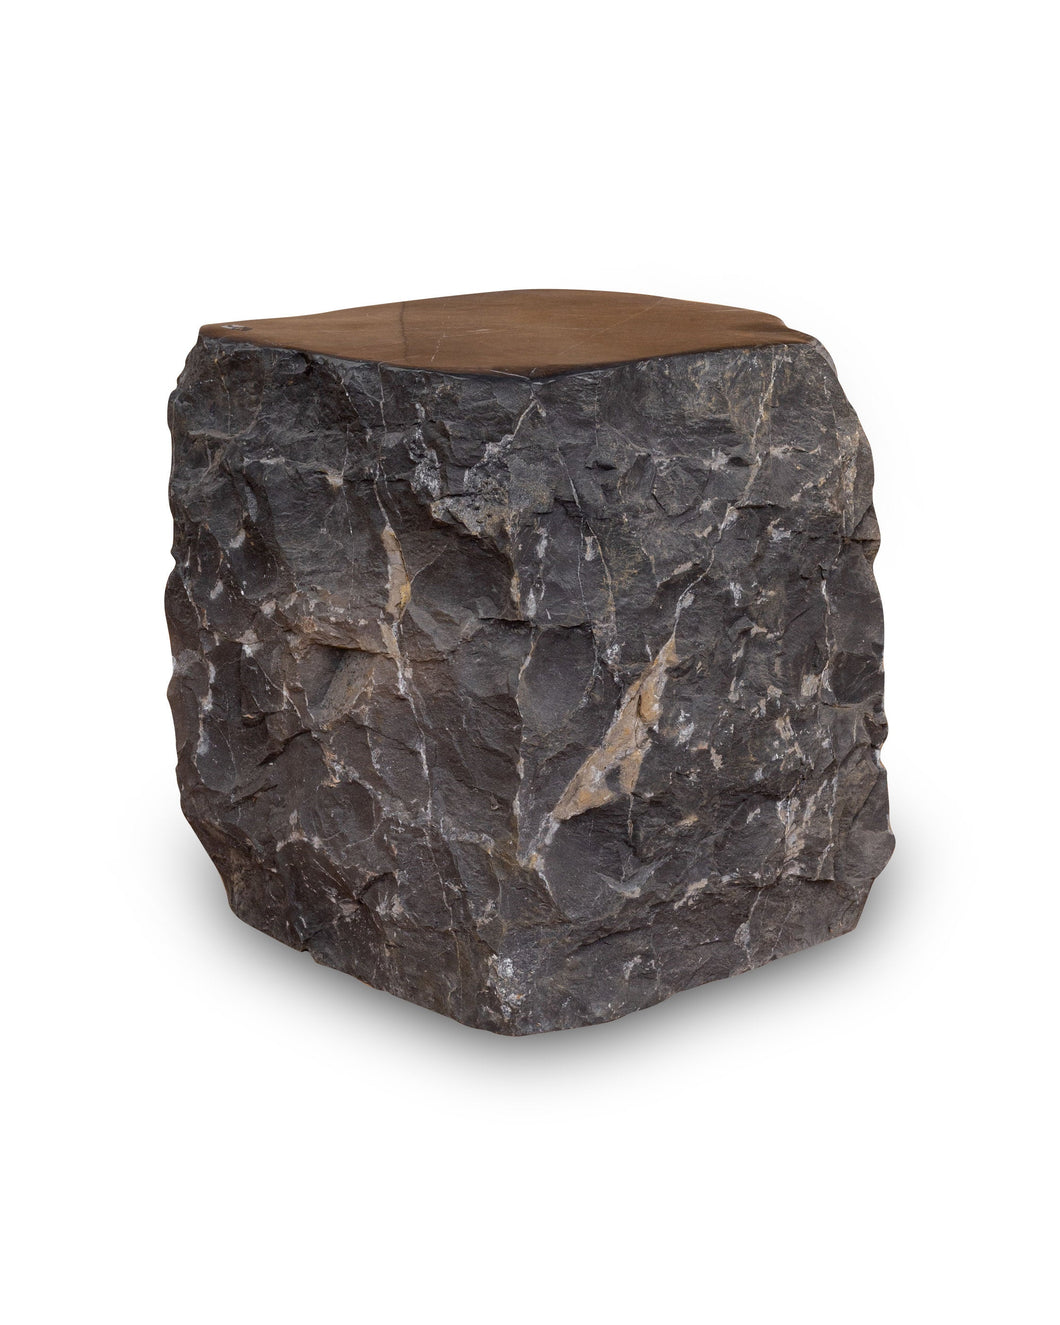 Natural Dark Marble Side Table, Hammer Hit Edges Solid Stool or End Table #2 (COMING IN THE END OF AUGUST)